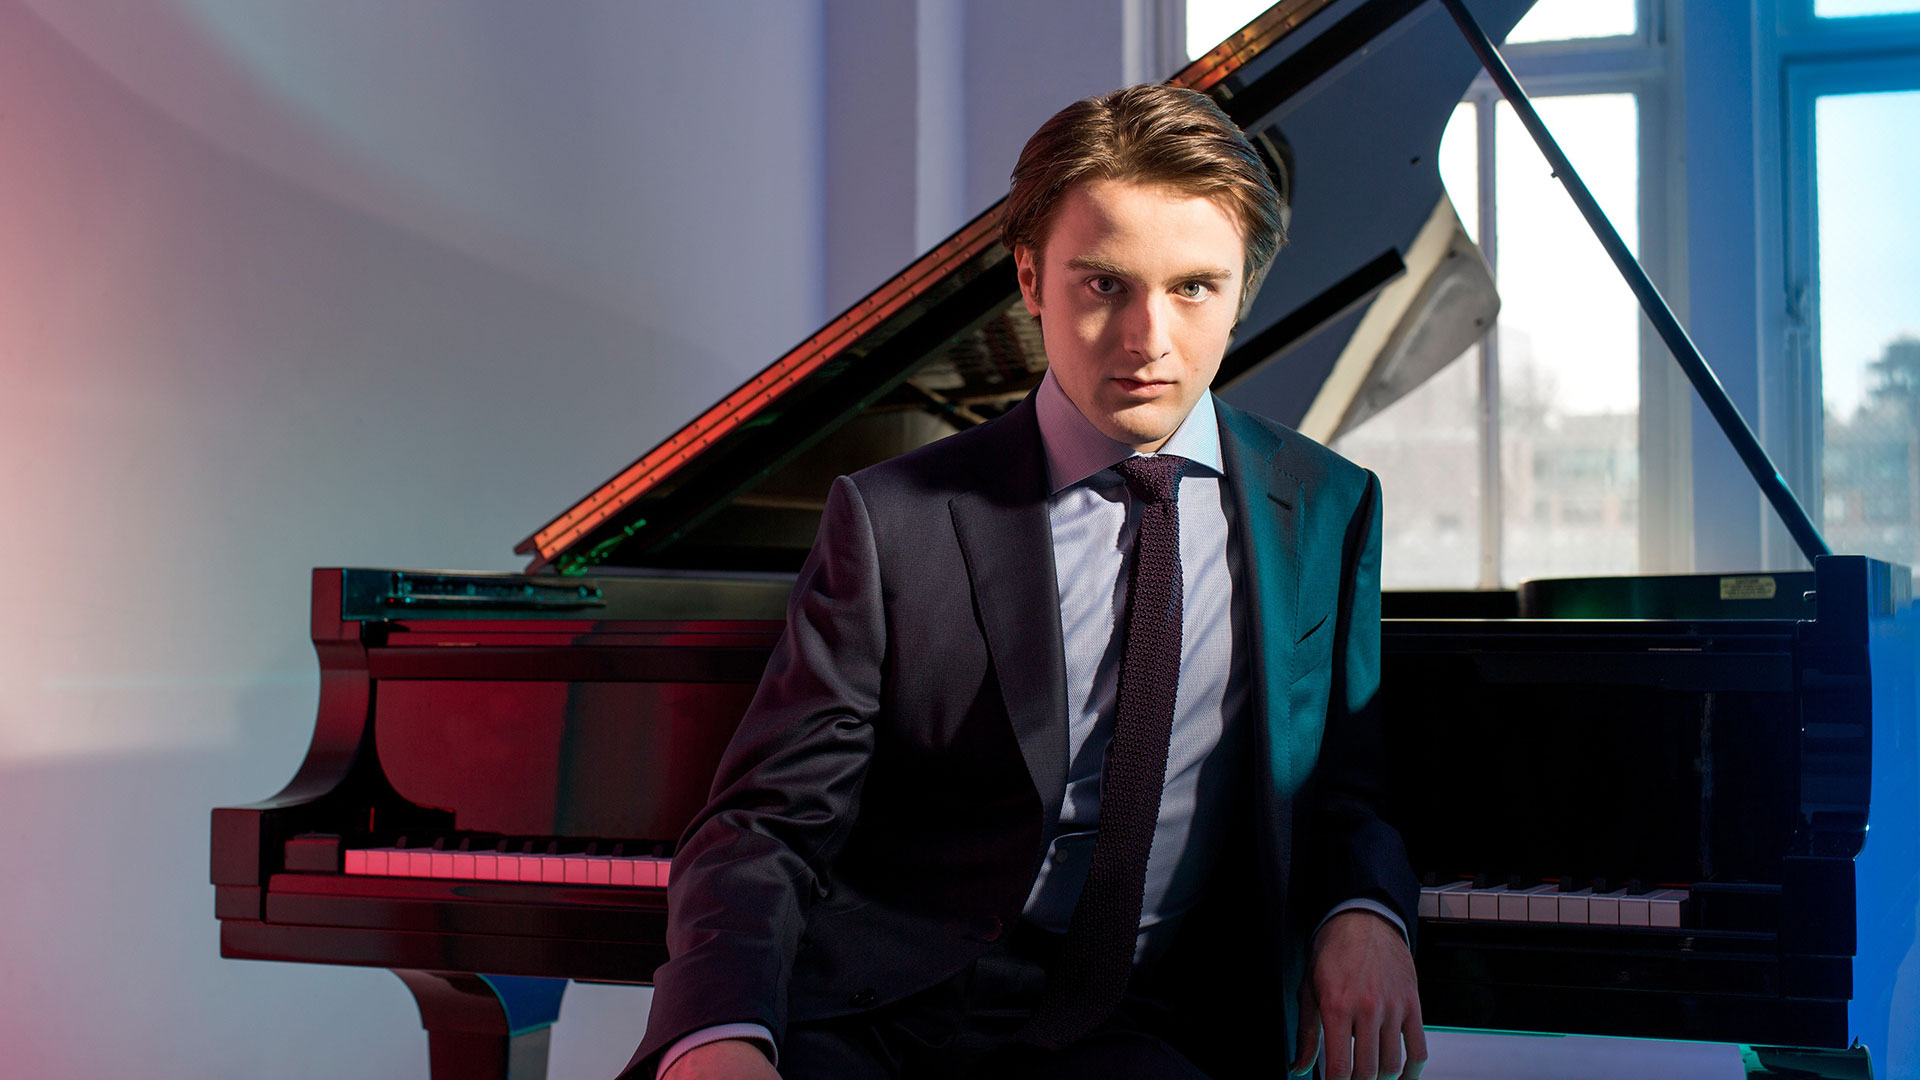 Daniil Trifonov, the Russian pianist who returns for a season-long residency, including a performance of Rachmaninoff's Concerto No. 3.